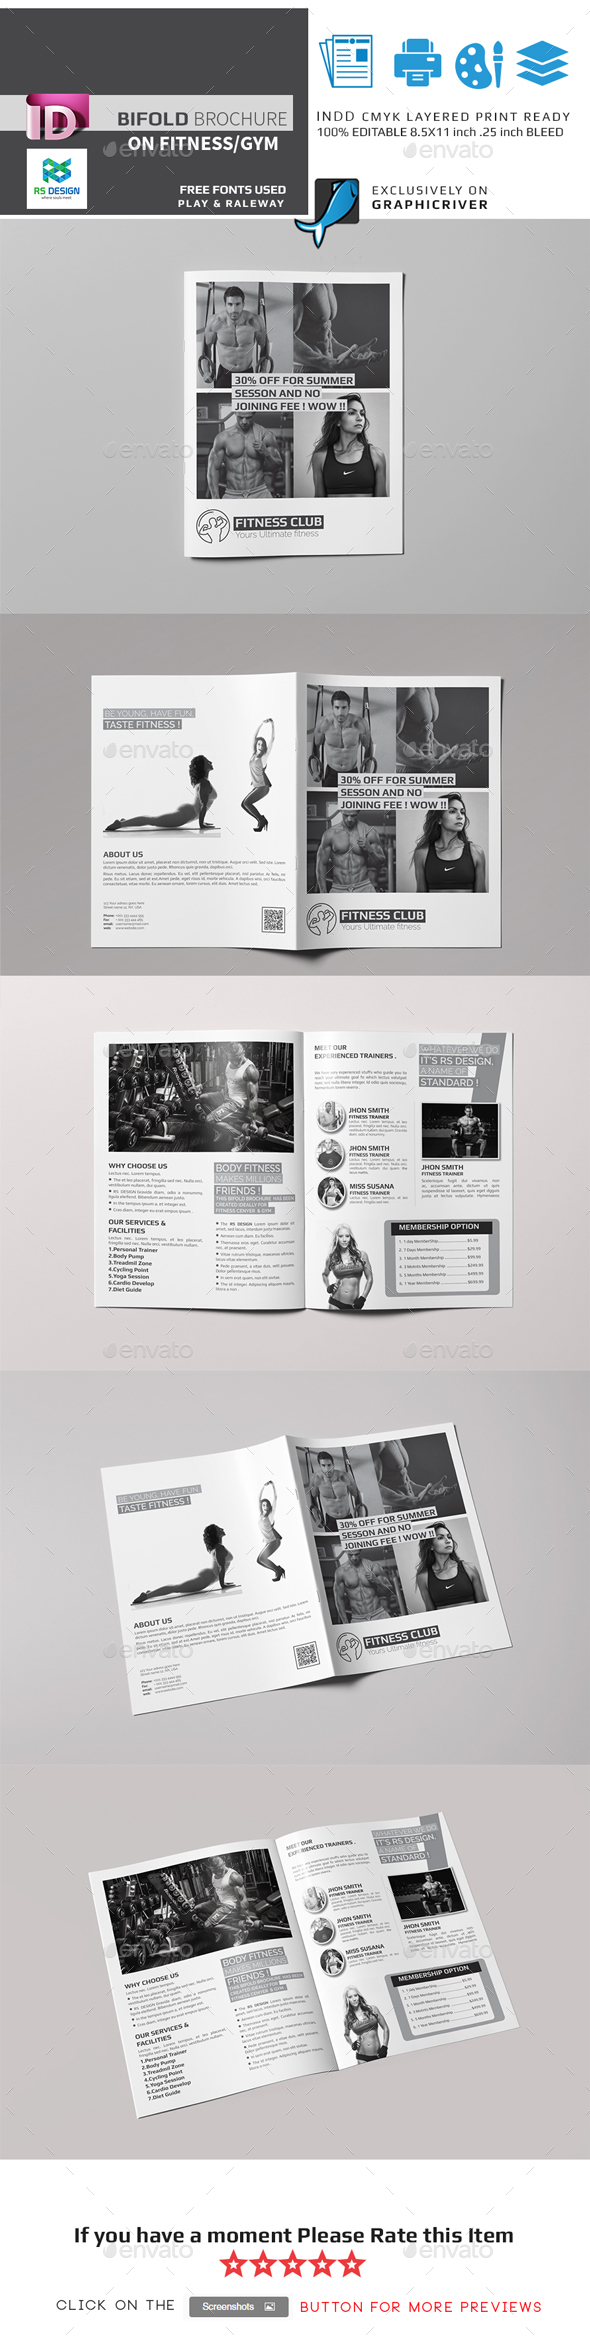 Bifold Brochure For FitnessGym Template Indesign Indd Download